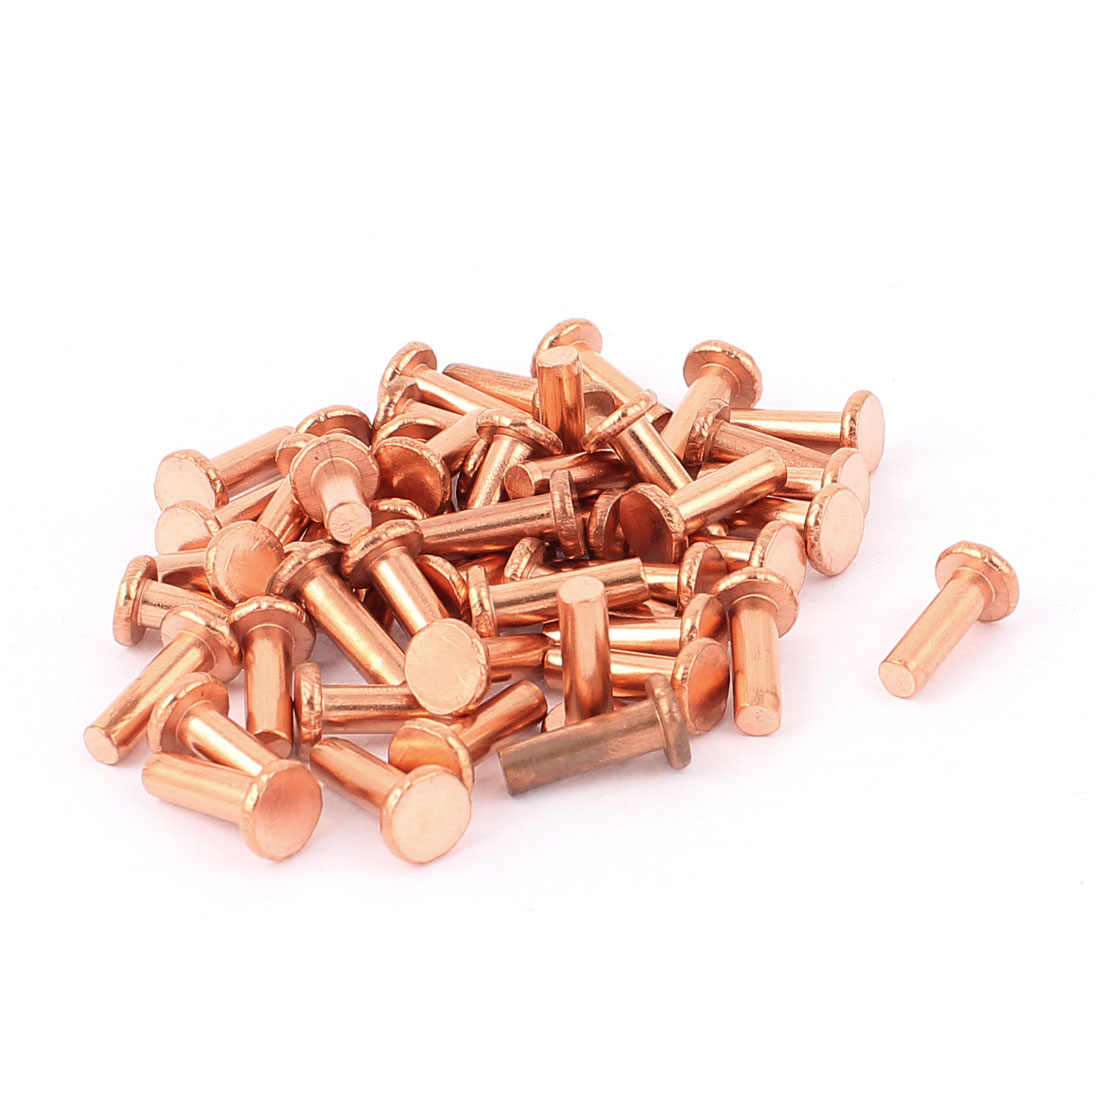 "50 Pcs 13/64"" Diameter 5/8"" Long Shank Flat Head Bolts Copper Solid Rivets Fasteners"